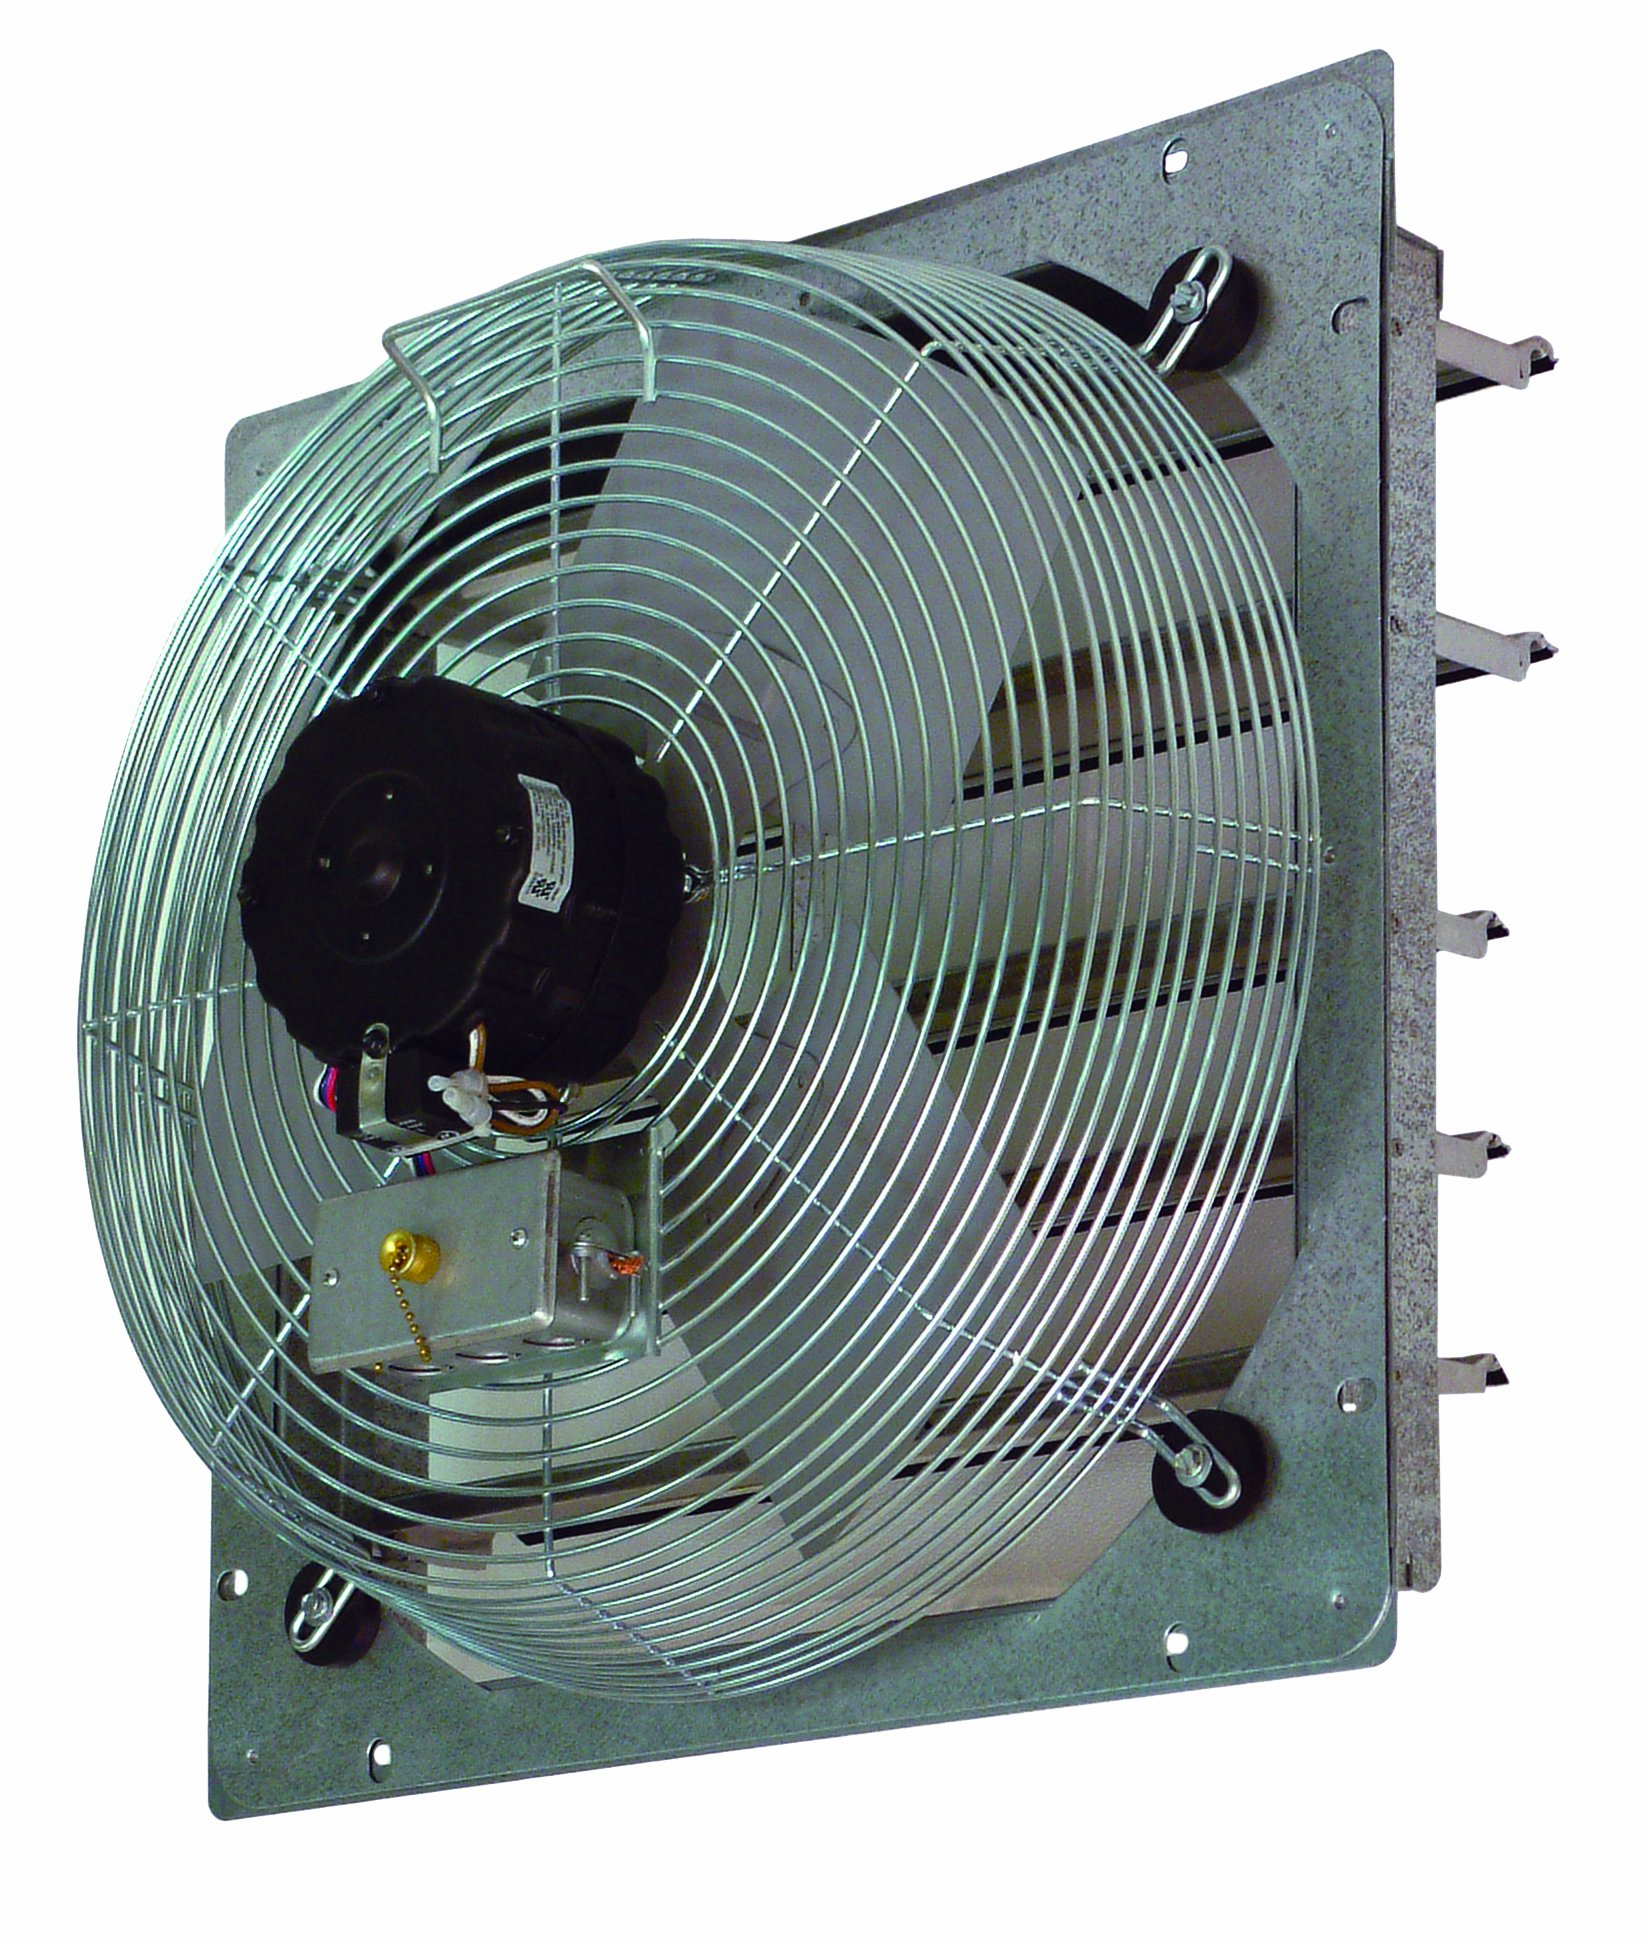 TPI Corporation CE14-DS Direct Drive Exhaust Fan, Shutter Mounted, Single Phase, 14'' Diameter, 120 Volt